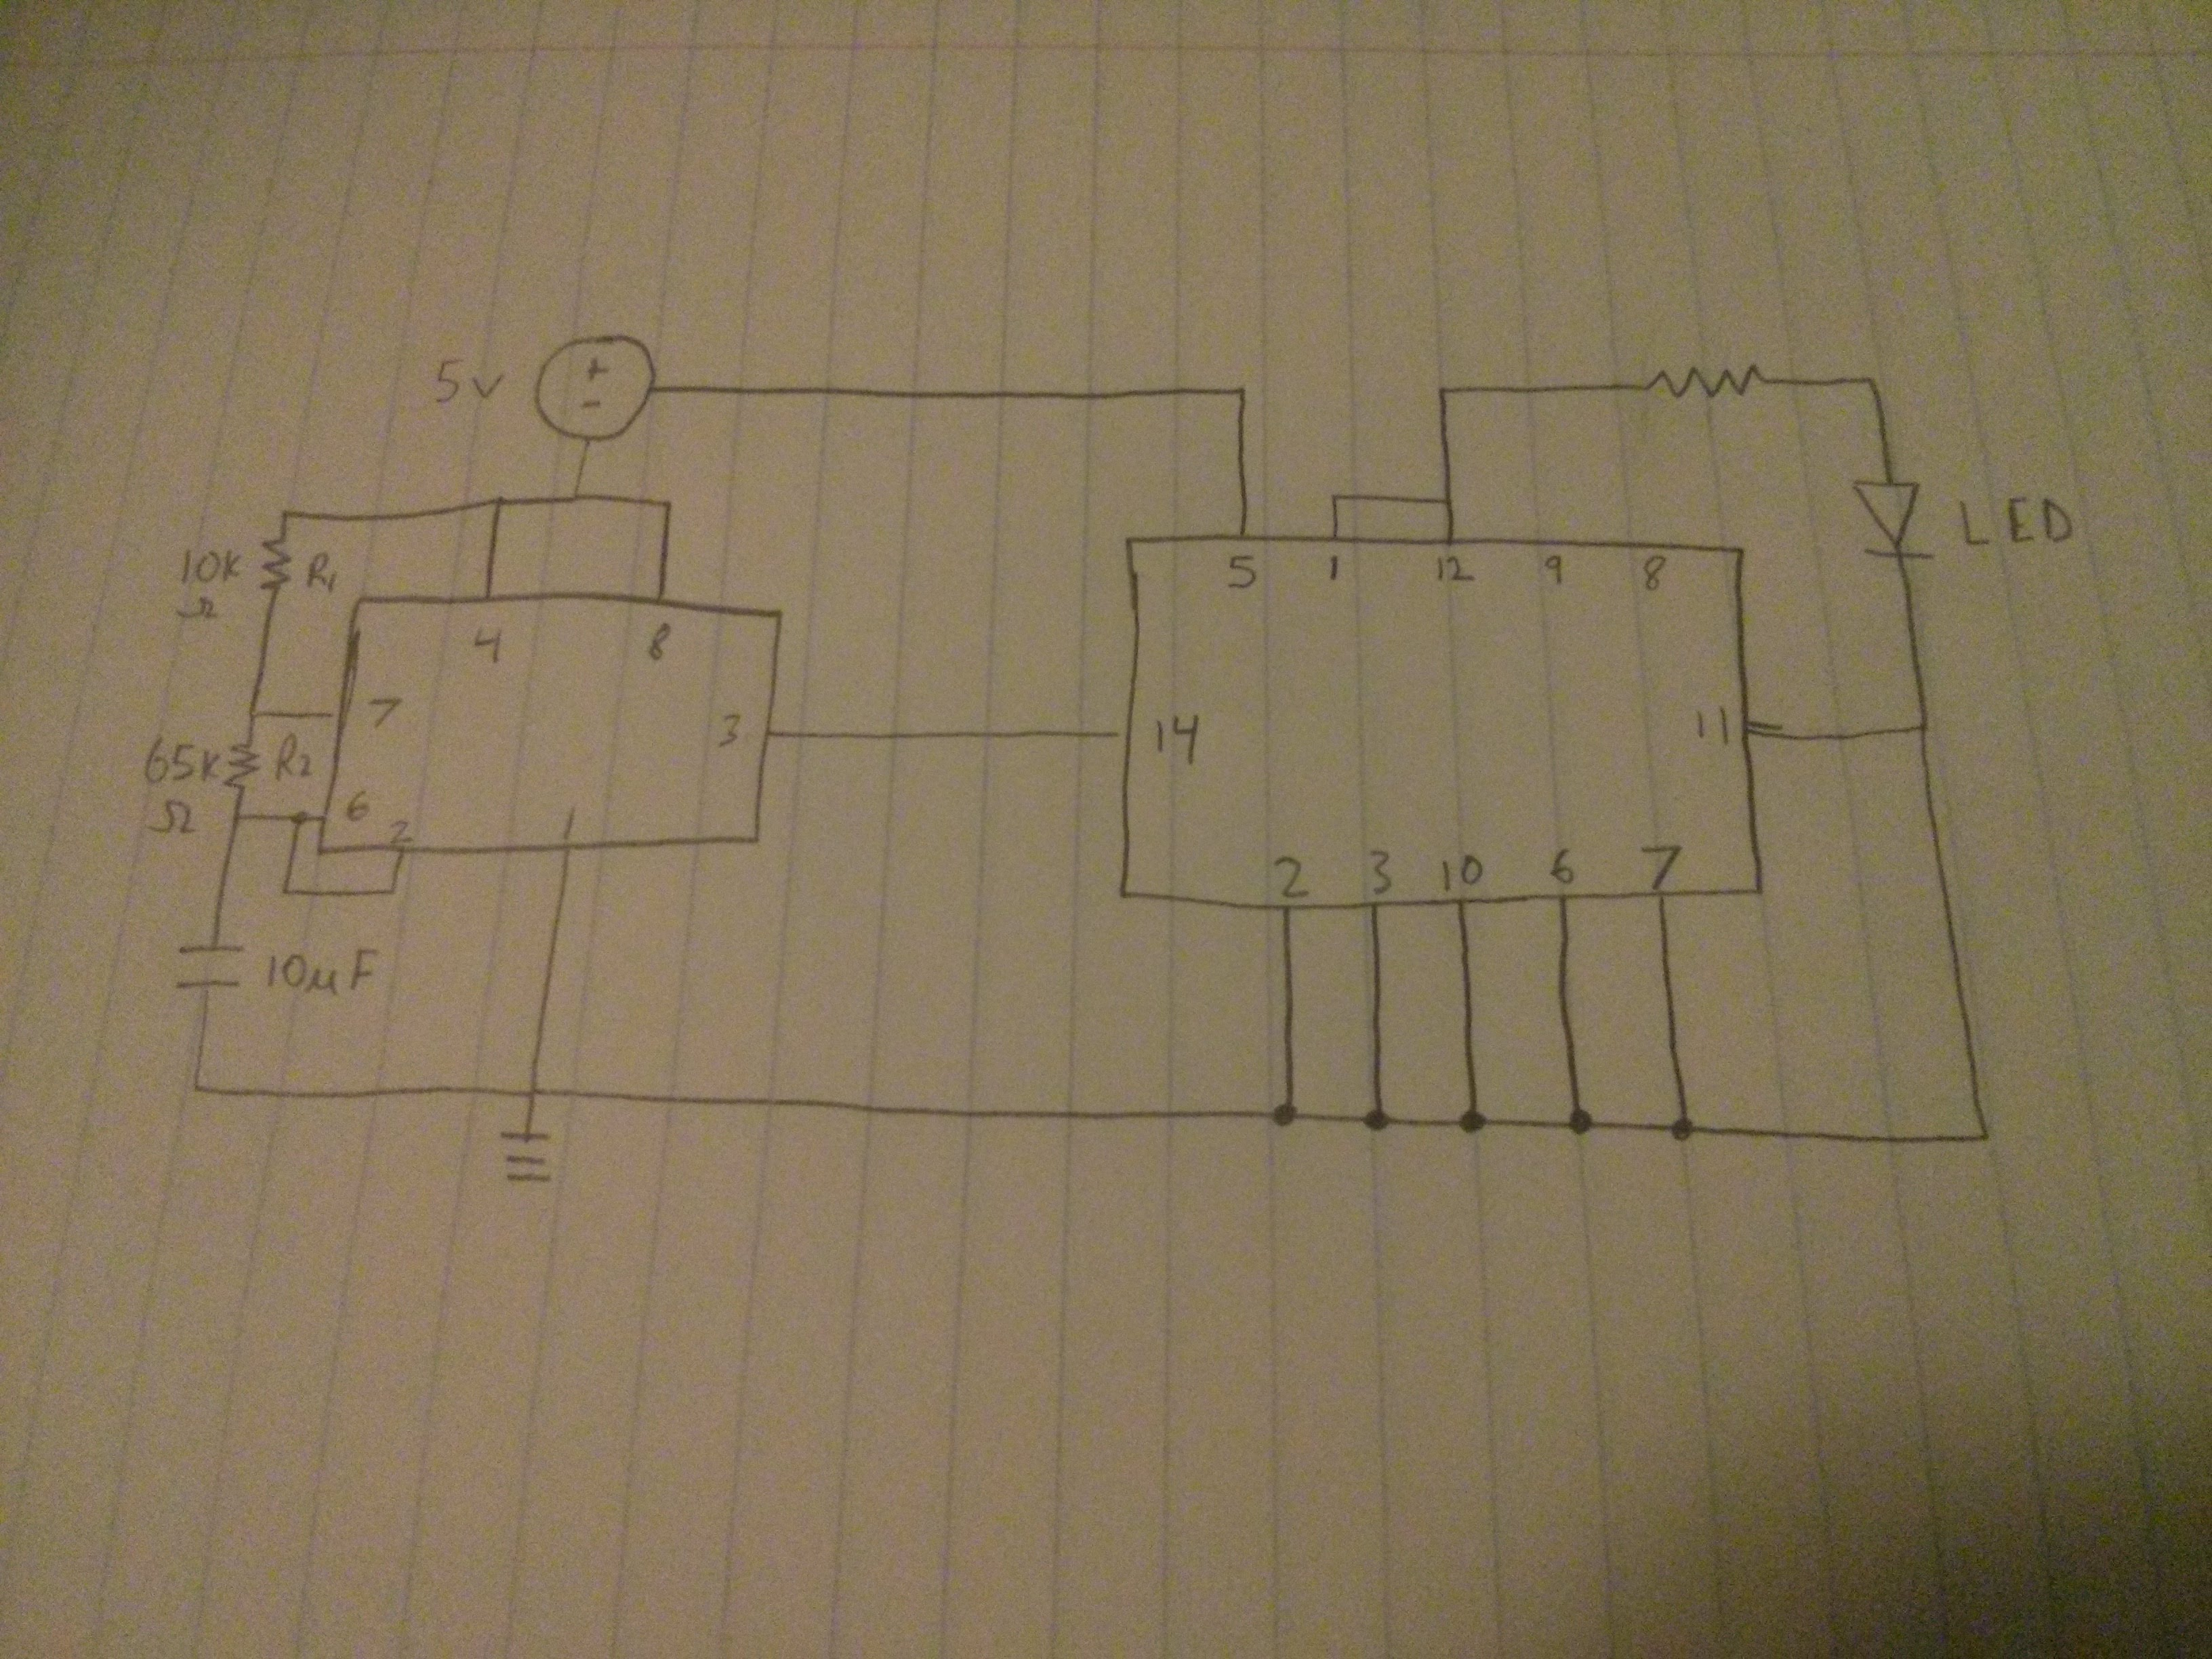 Design Project Elec 163 Elec163595 Jamespham Blinking Led Circuit With Schematics And Explanation Making It Blink About Every One Second Below Is The Schematic Of Our As Well Links To Spread Sheet 555 Timer 7490